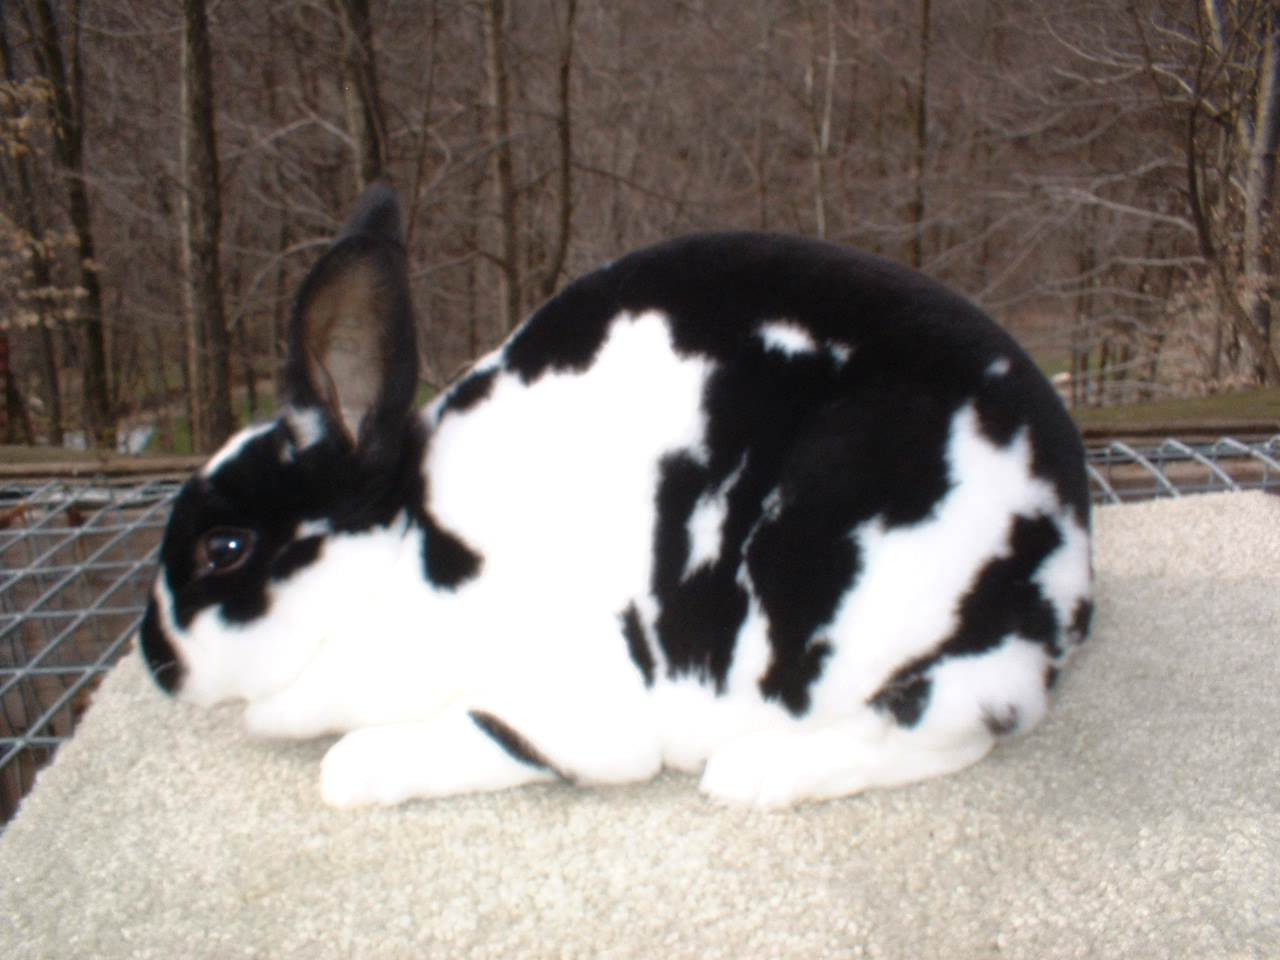 Broken Mini Rex Rabbit | www.pixshark.com - Images ...